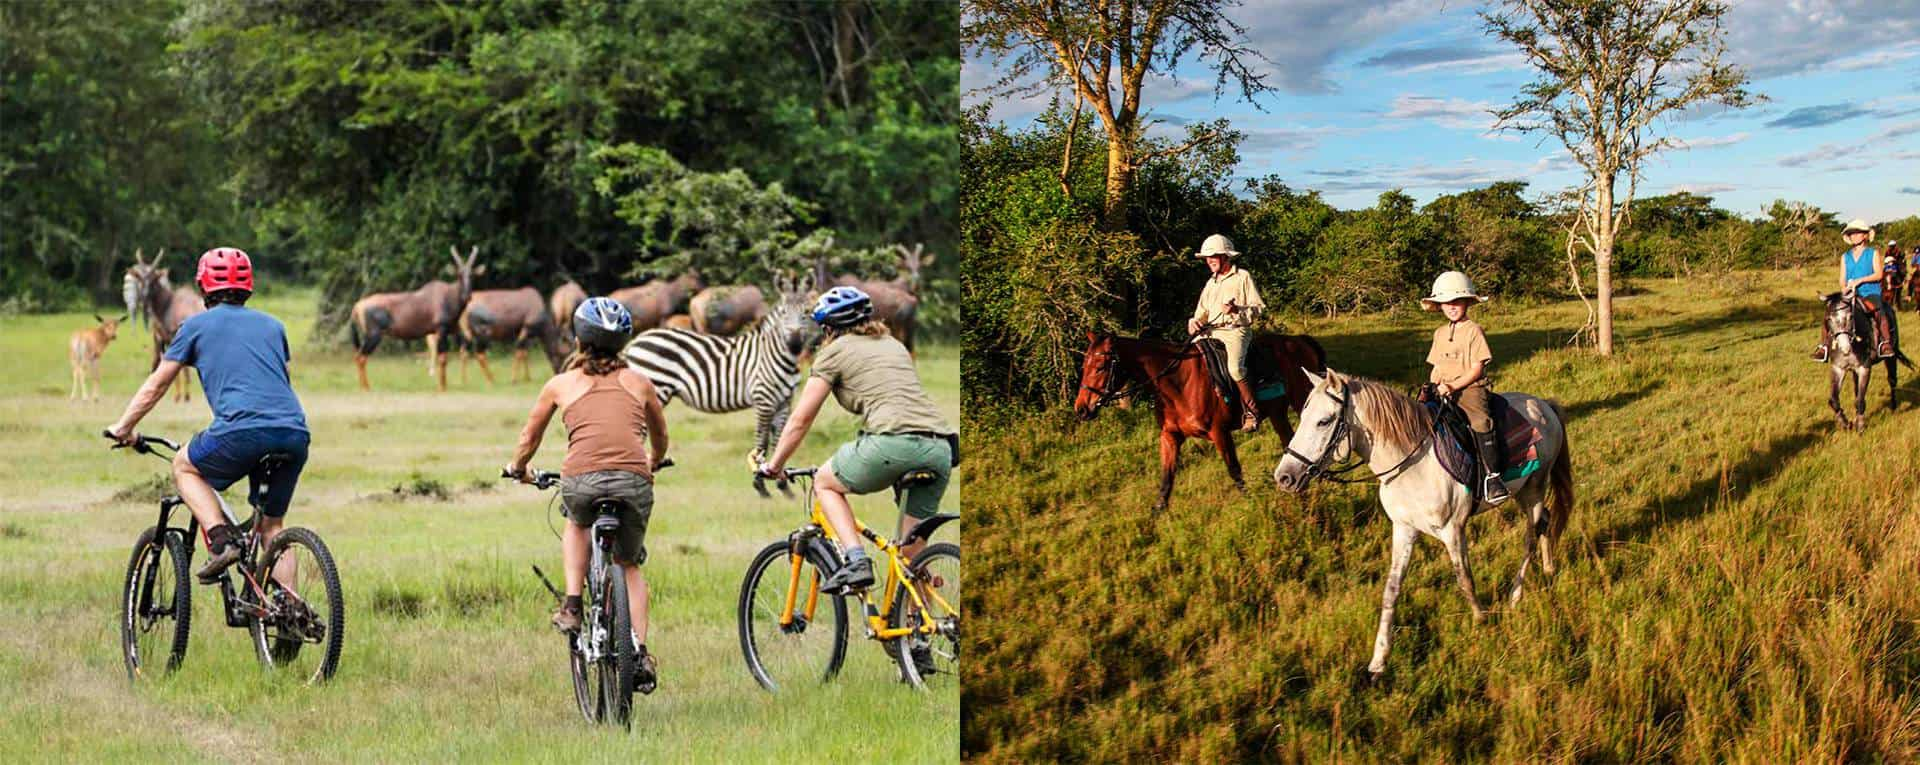 What Children Activities To Expect From A Uganda Family Safari